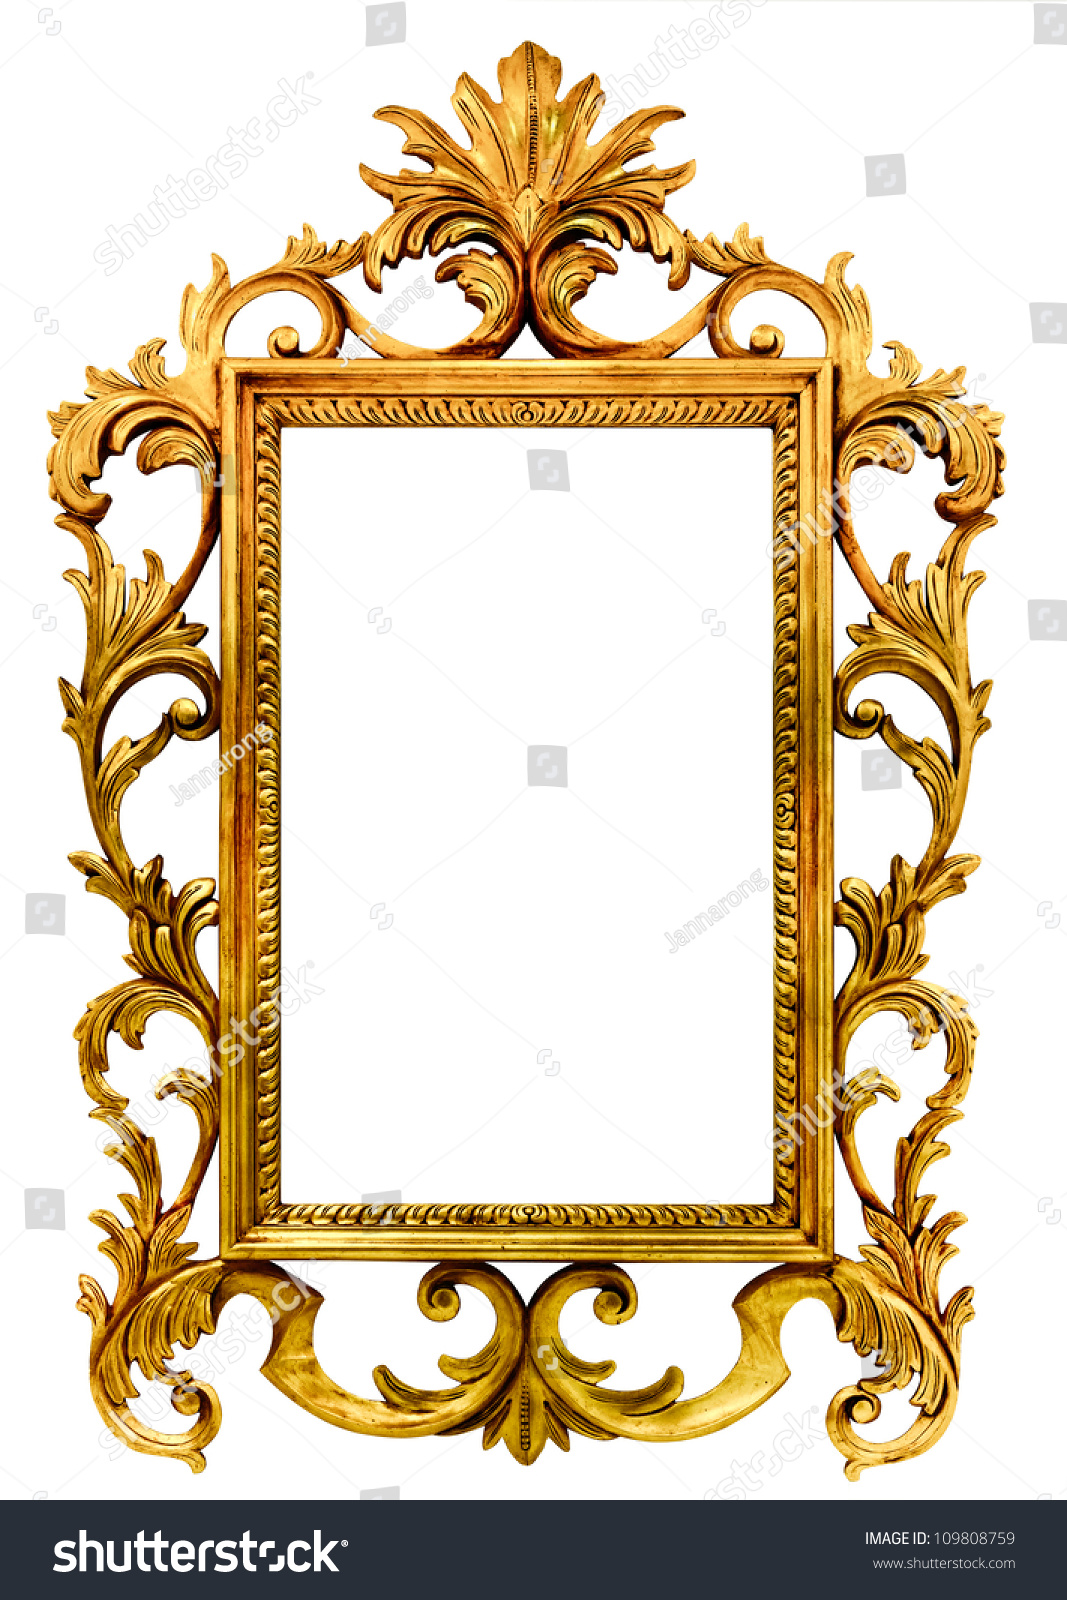 High Resolution Baroque Style Vintage Wood Stock Photo